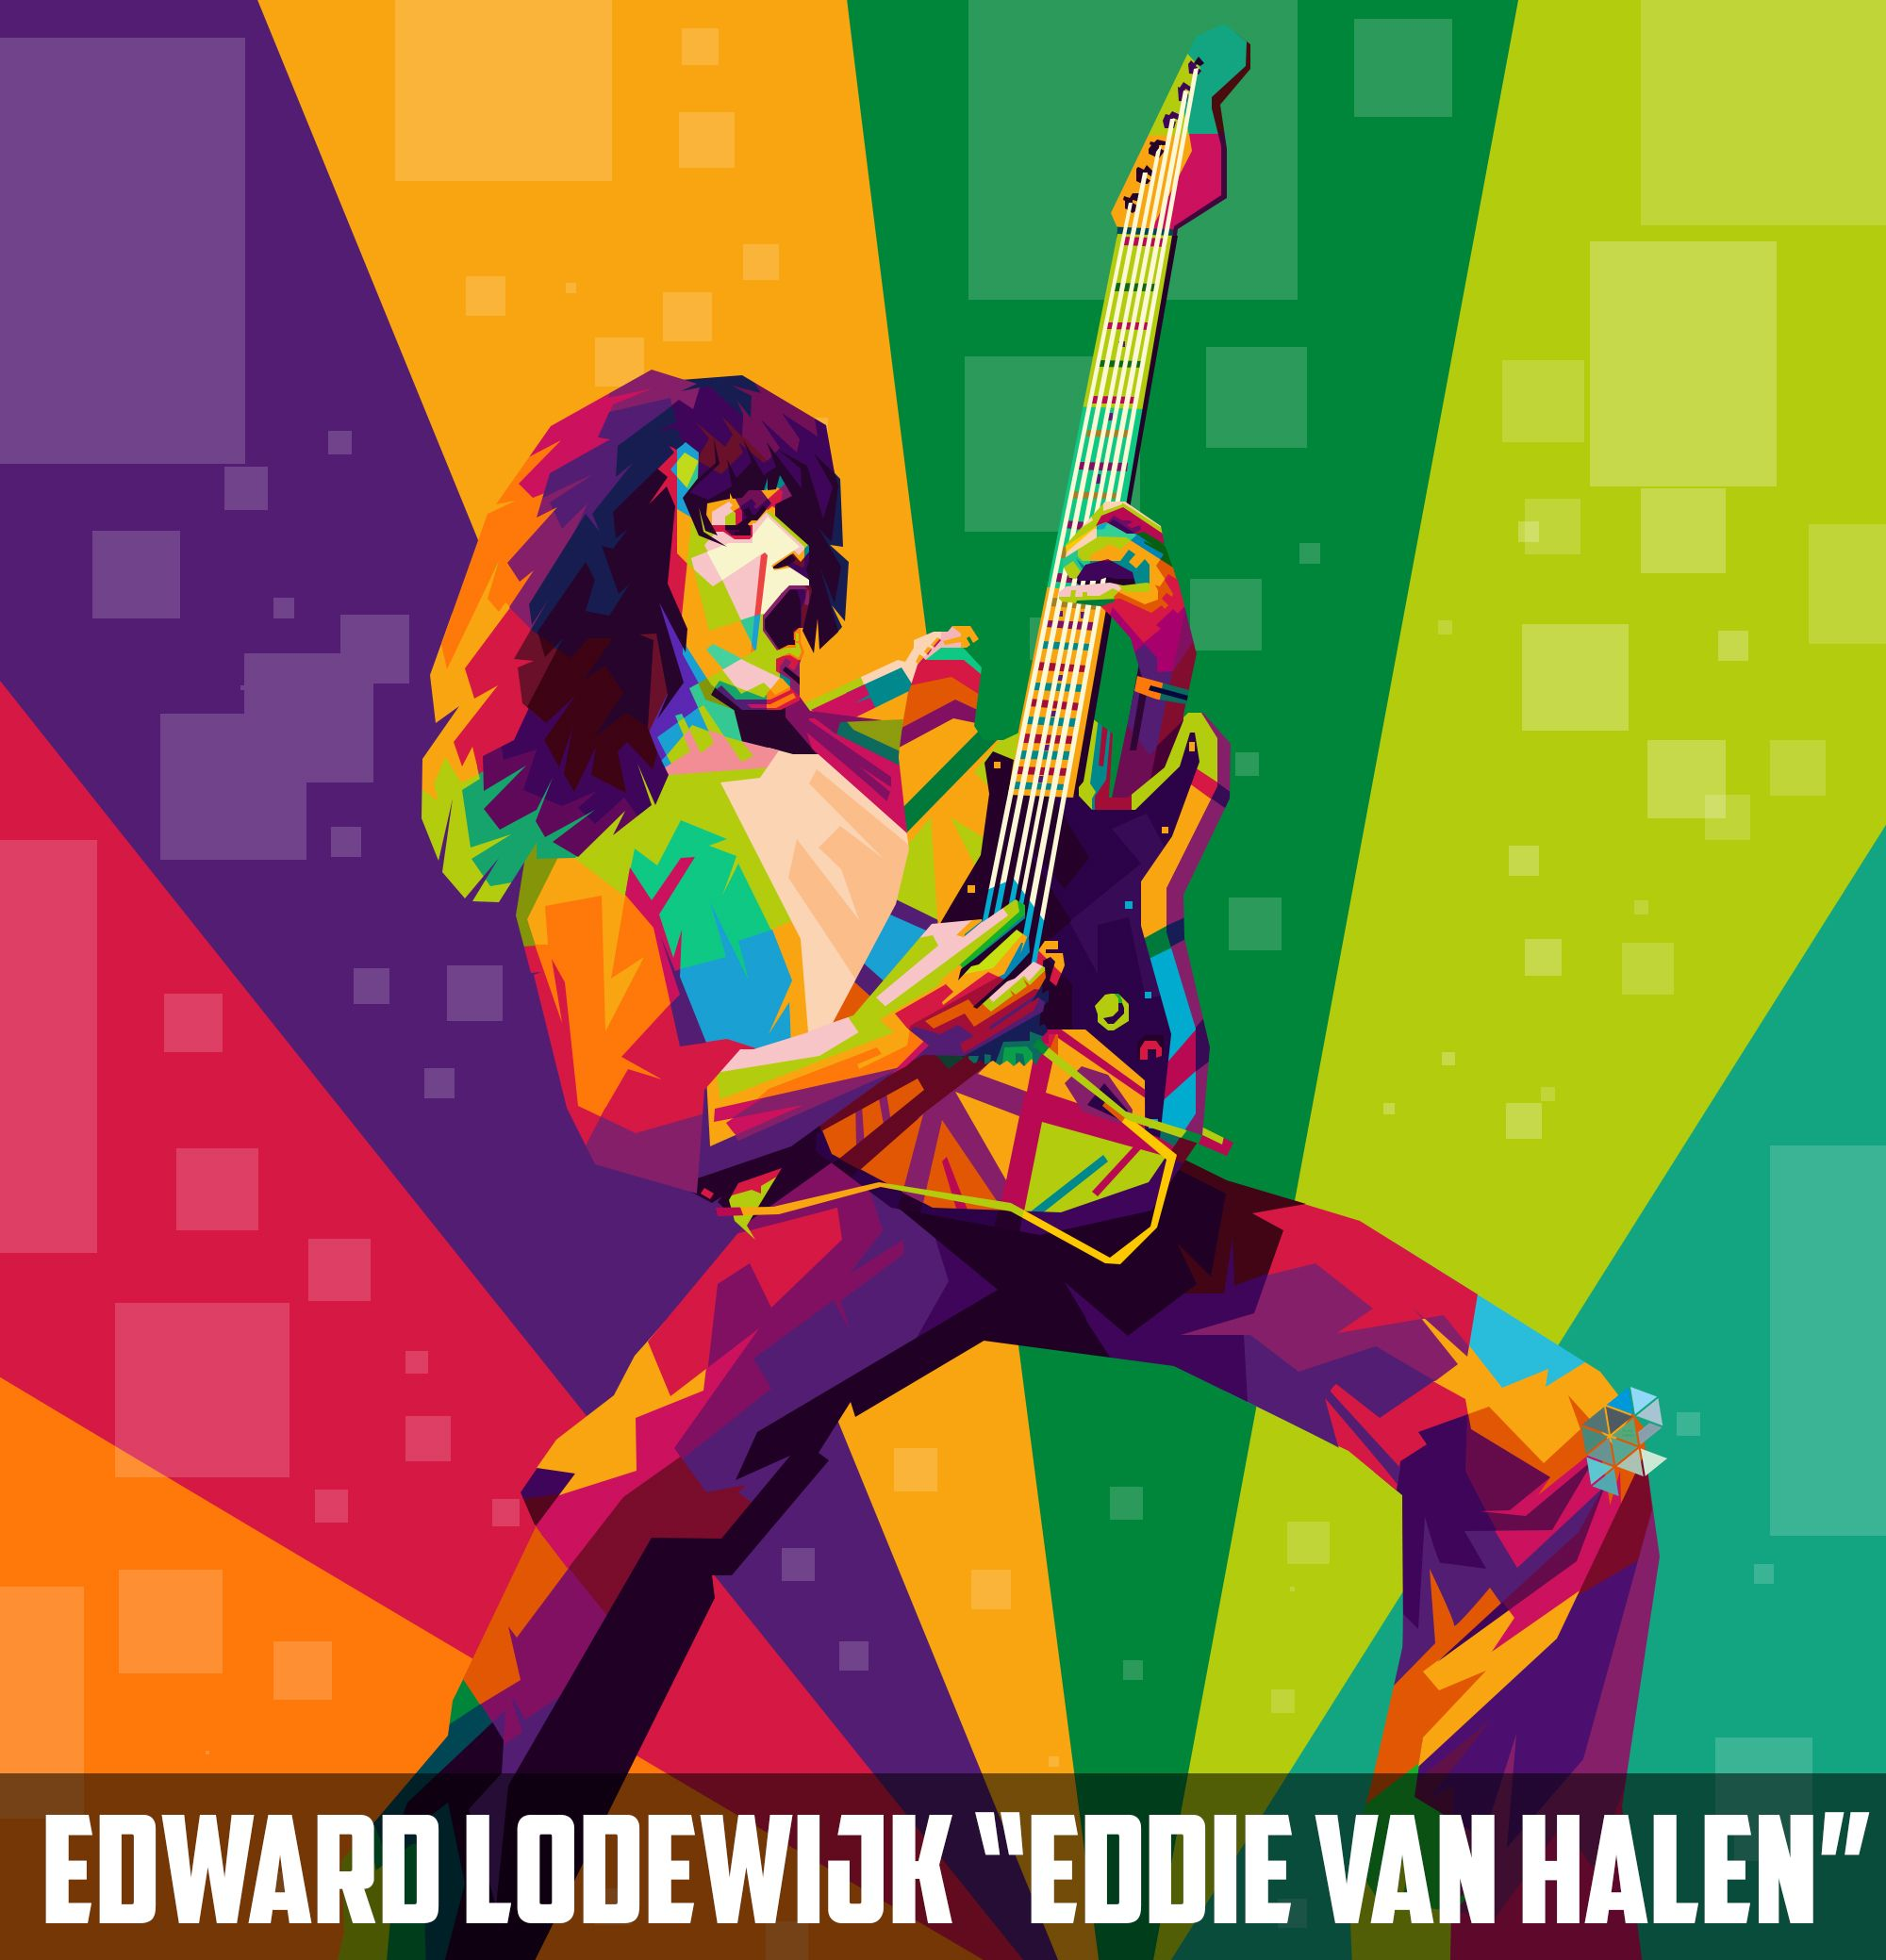 Eddie Van Halen Colorful Pop Art